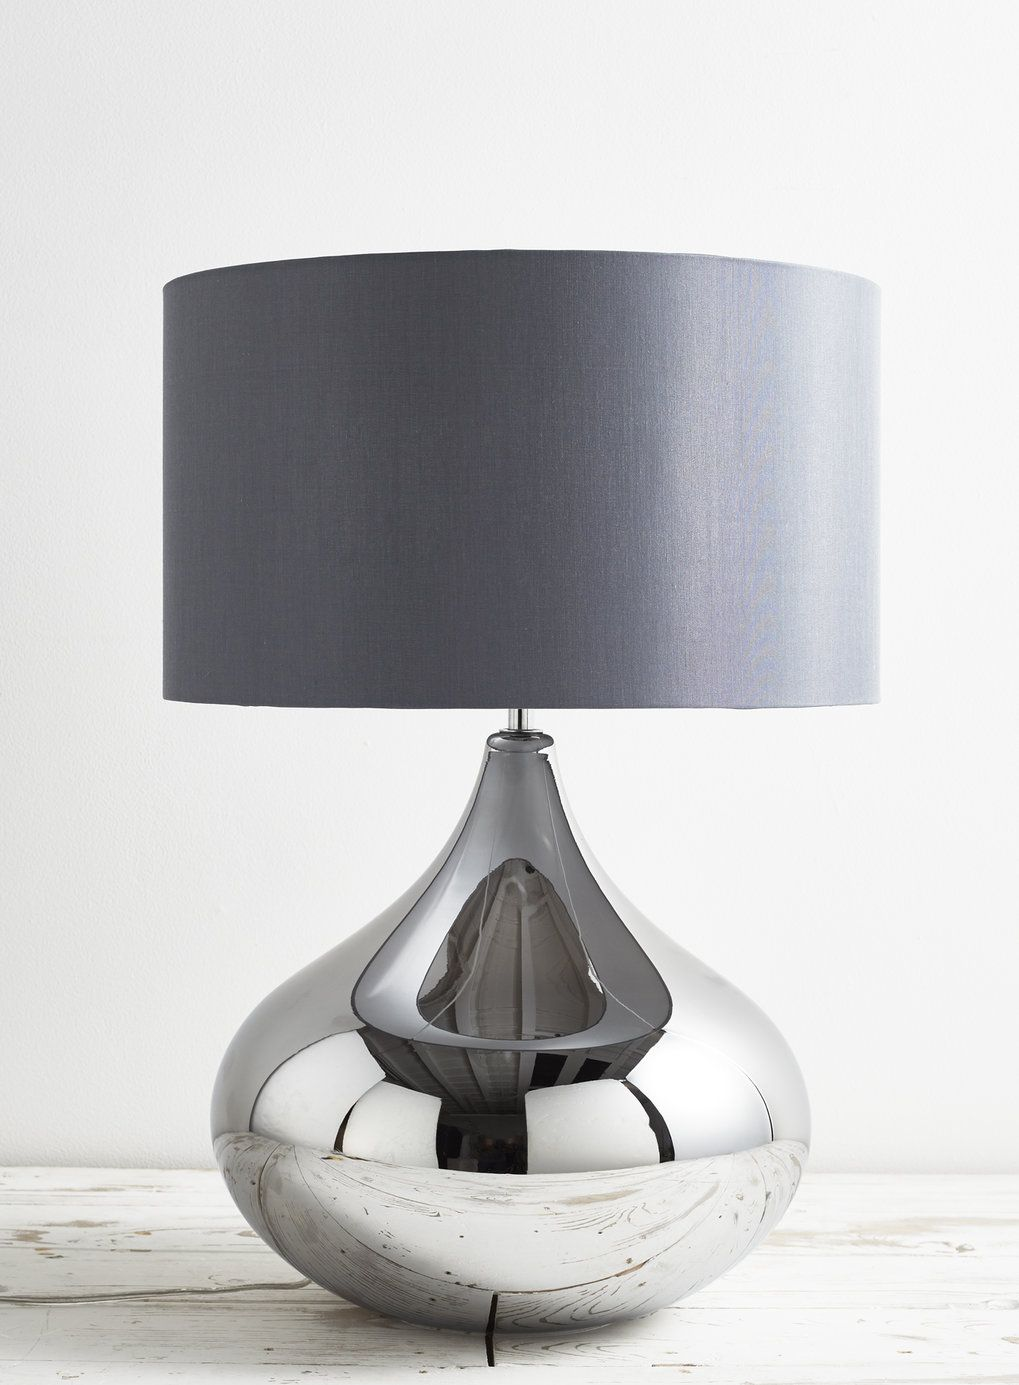 photo 3 of new lily round table lamp light me up pinterest